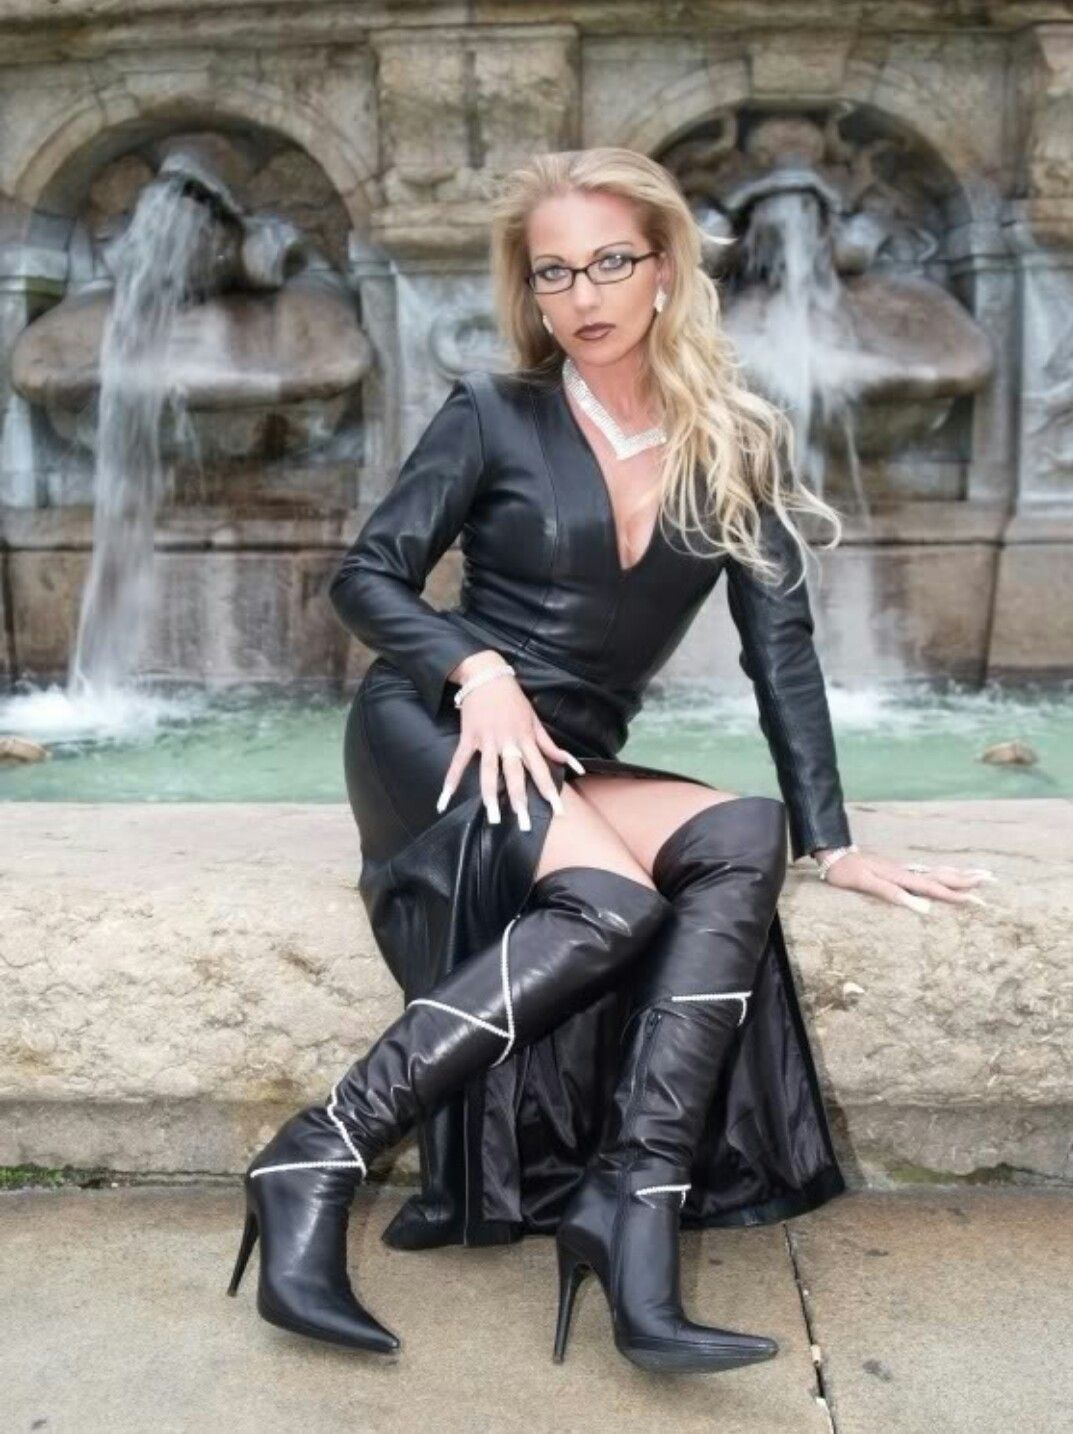 Heike - Fetish Queen in Black Leather V Neck Long Dress and Boots Knee Boots .